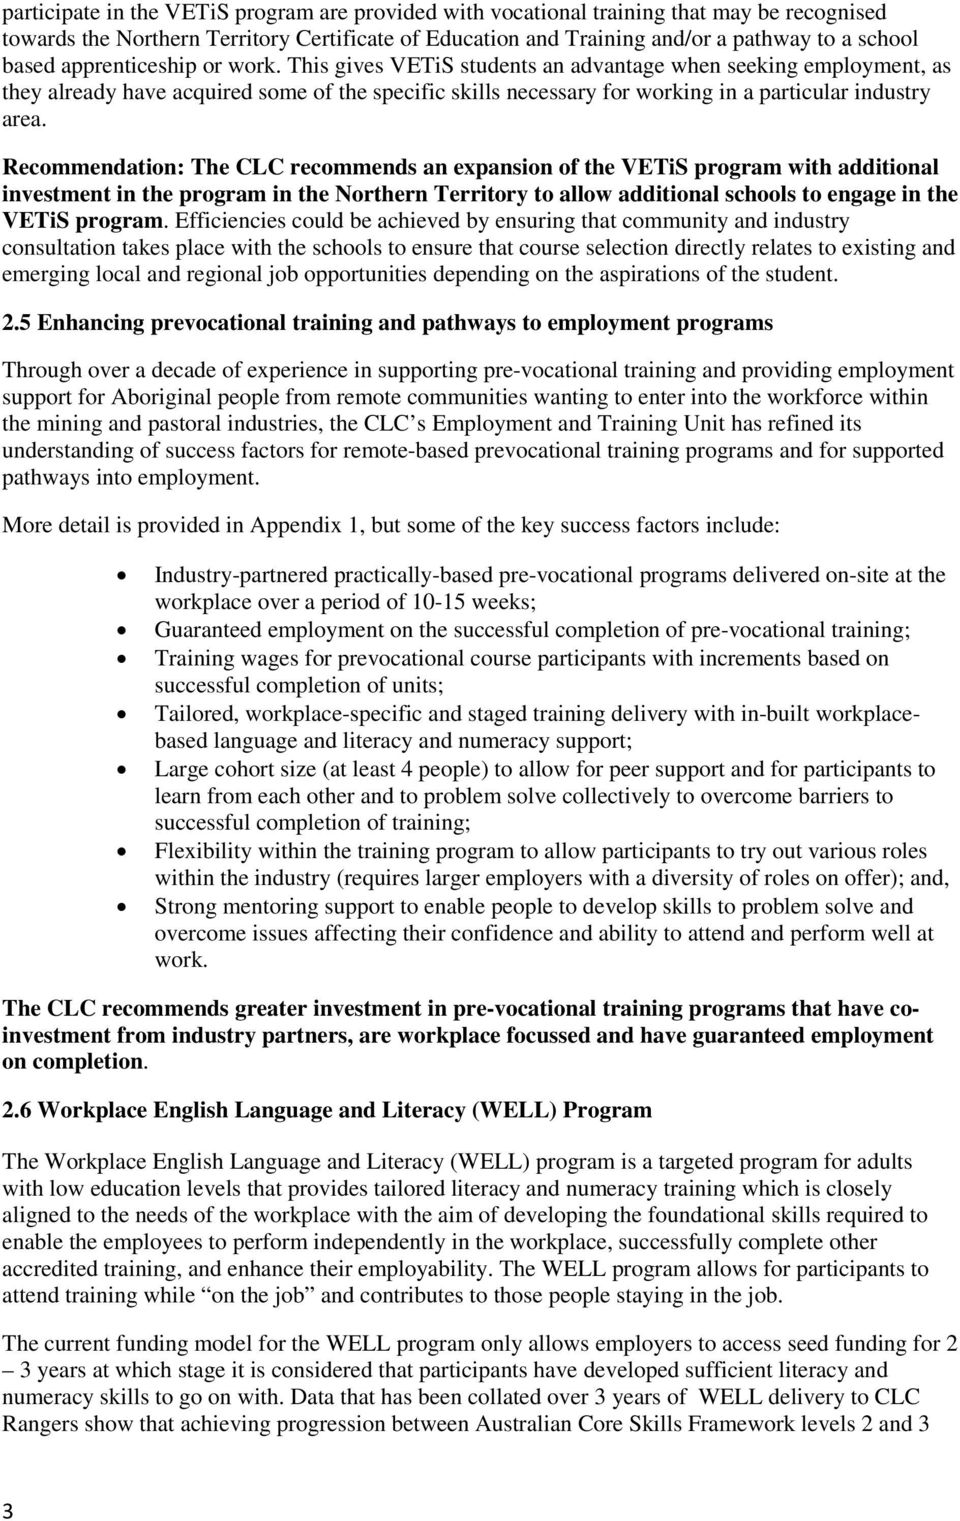 Recommendation: The CLC recommends an expansion of the VETiS program with additional investment in the program in the Northern Territory to allow additional schools to engage in the VETiS program.